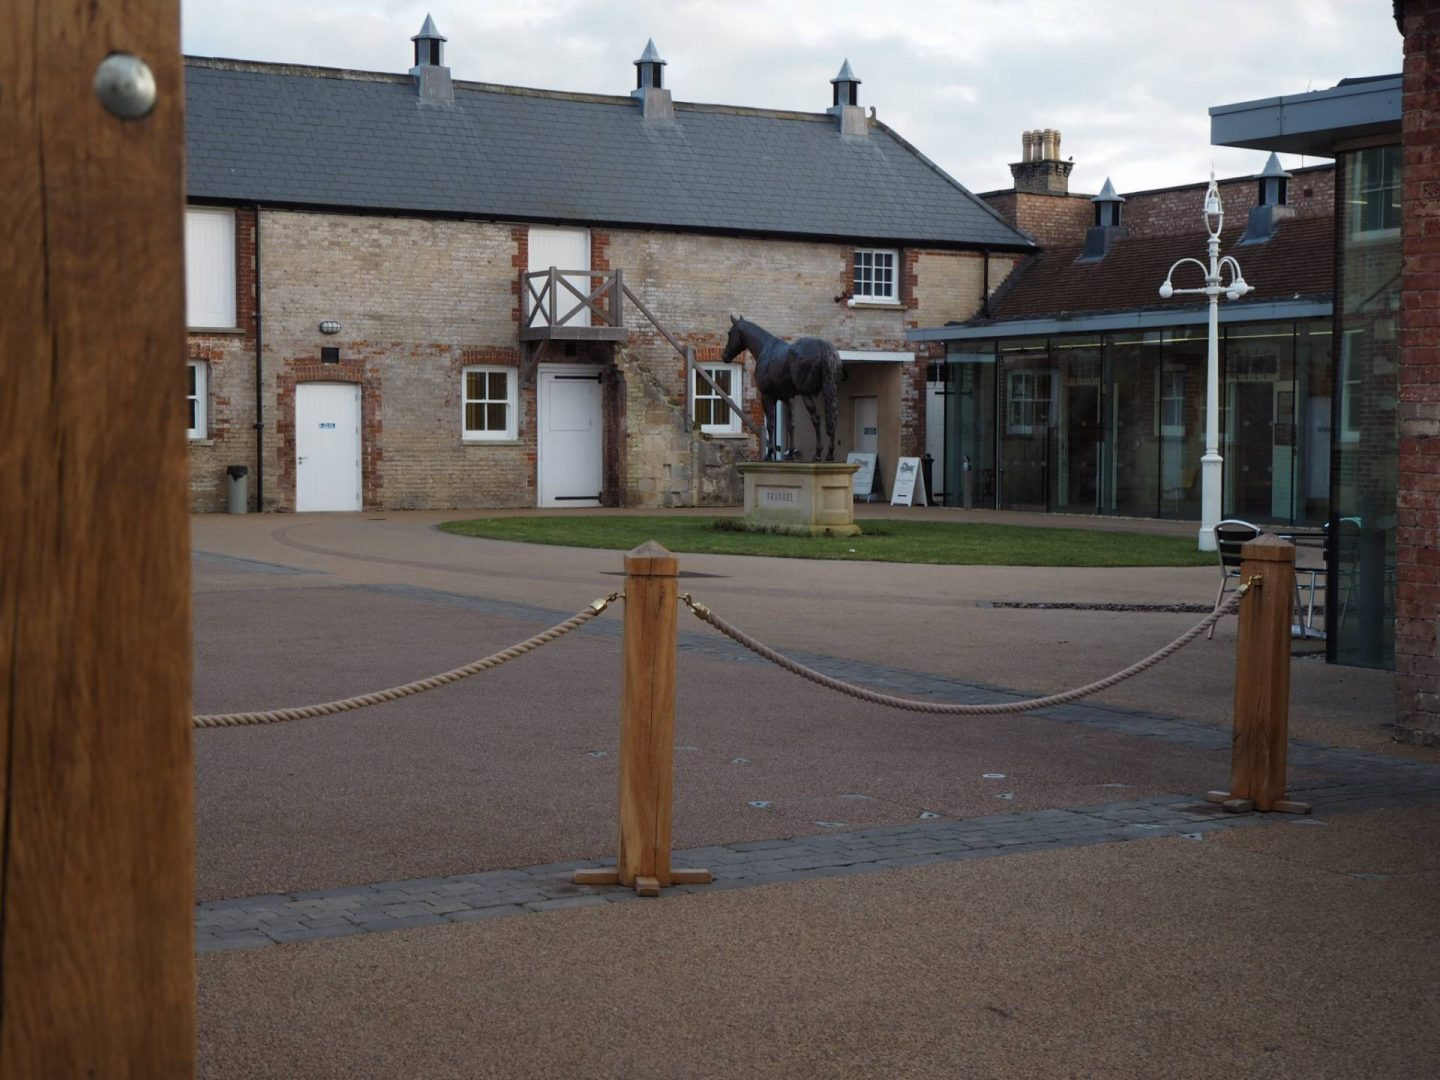 National Heritage Museum and Tack Room in Newmarket